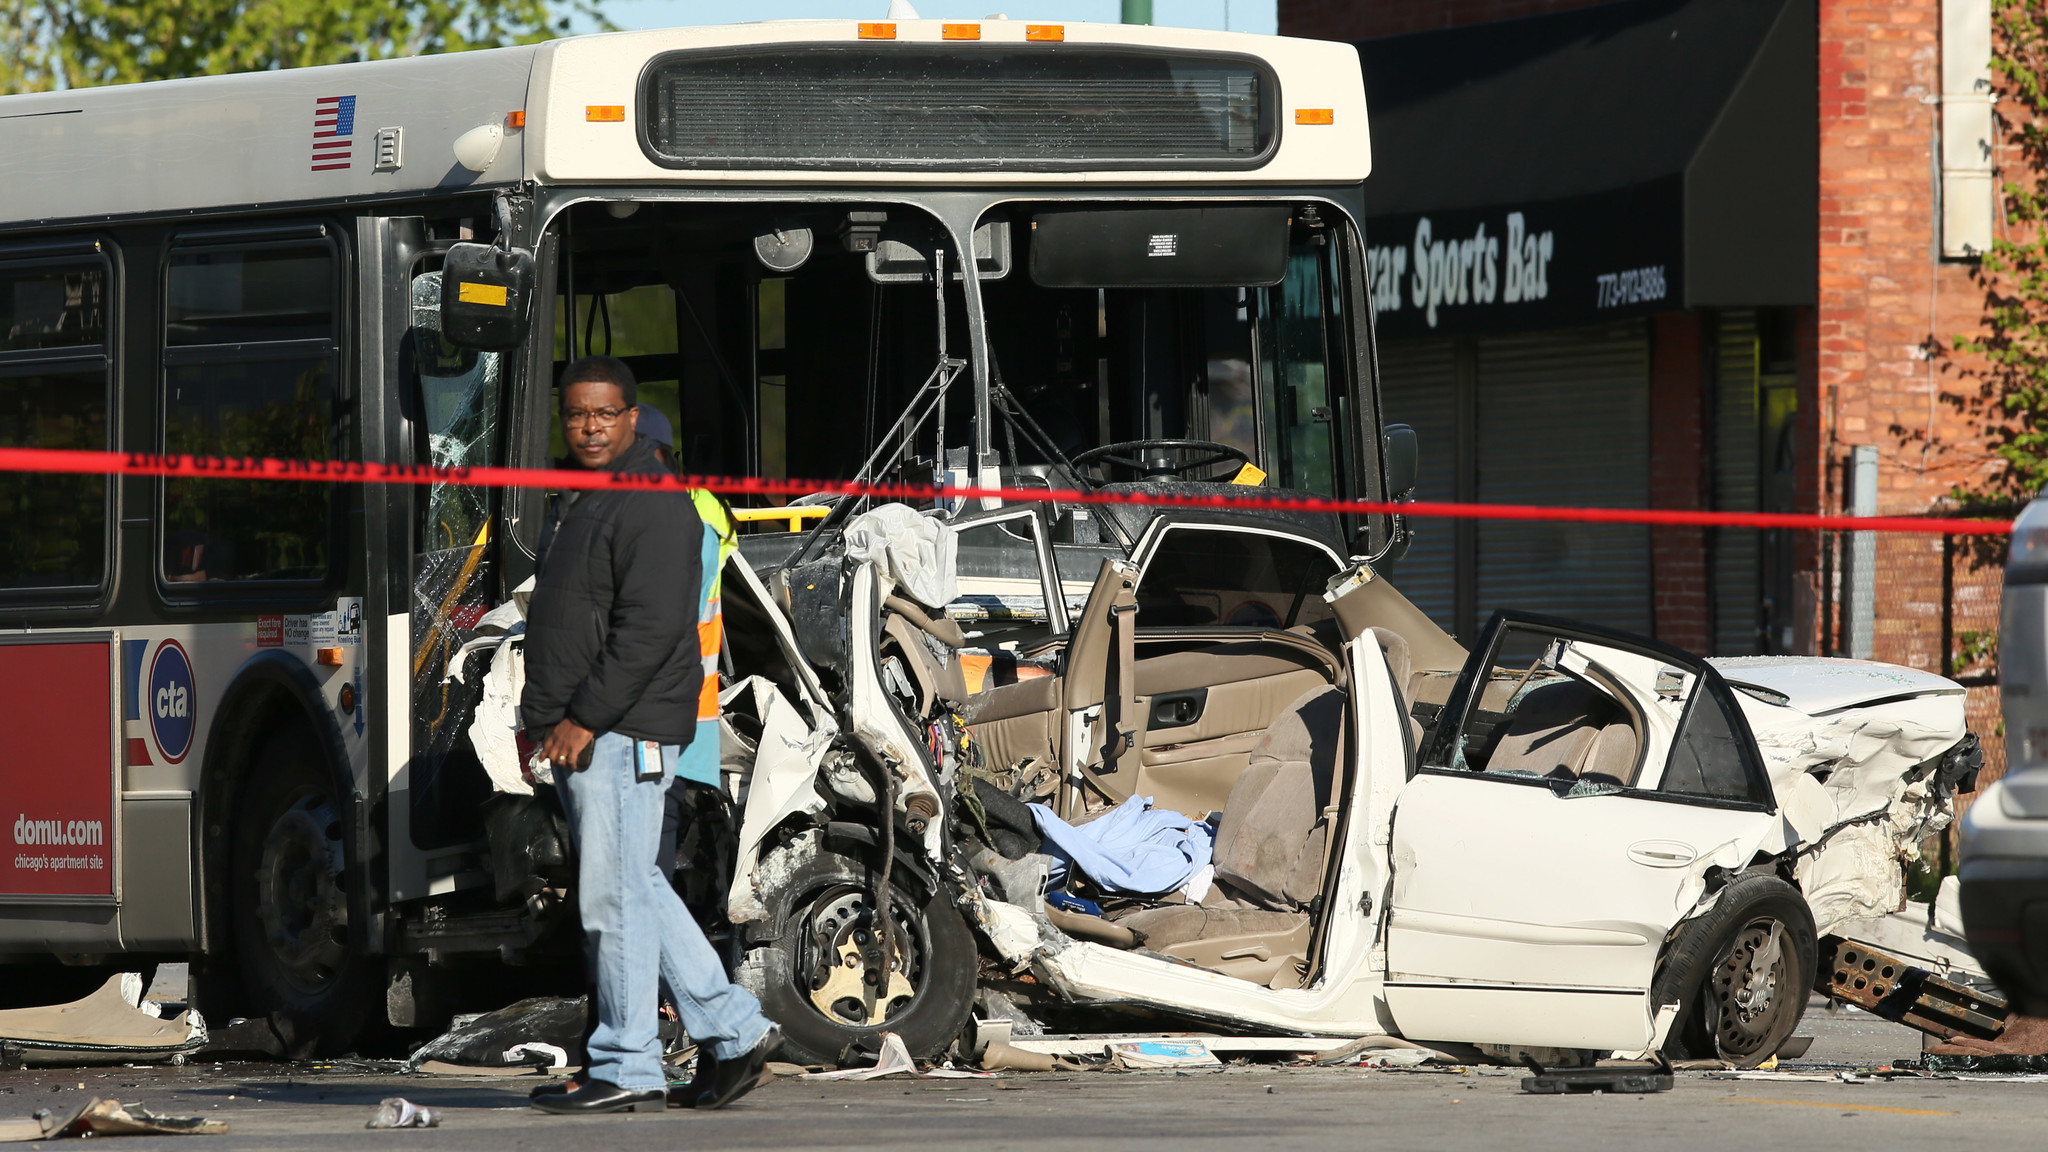 2 Of 4 People Killed Identified After CTA Bus, Car Collide